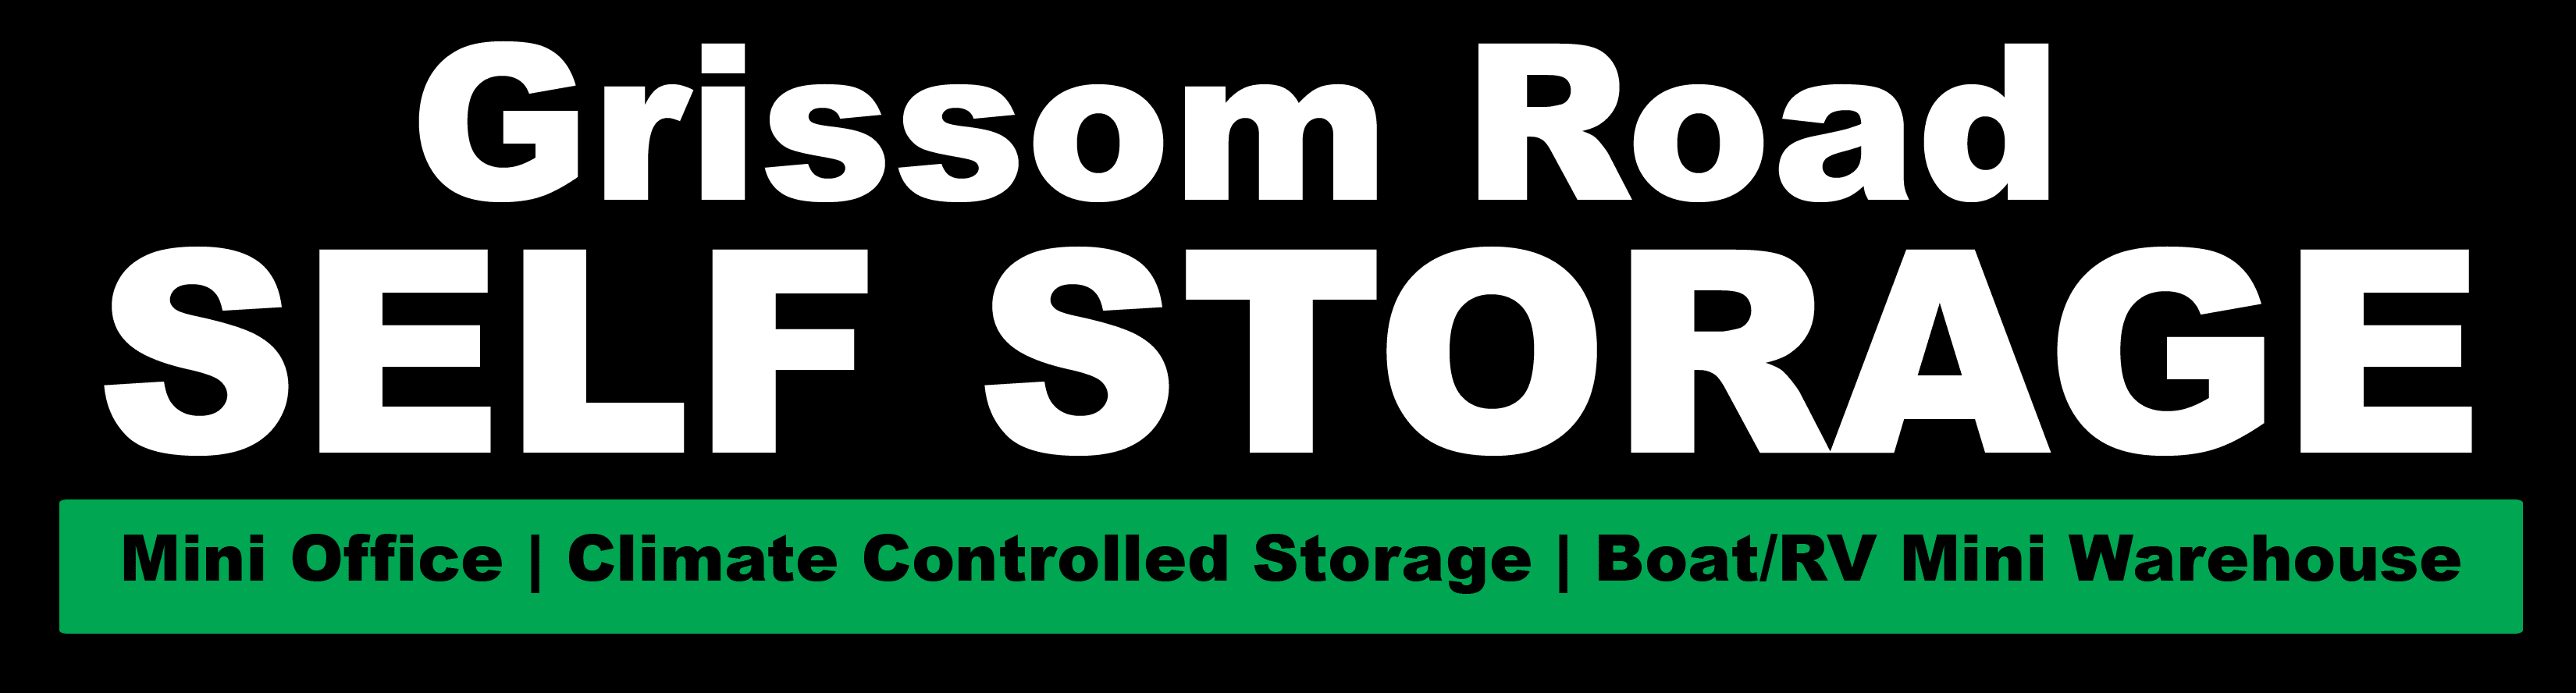 Grissom Road Self Storage